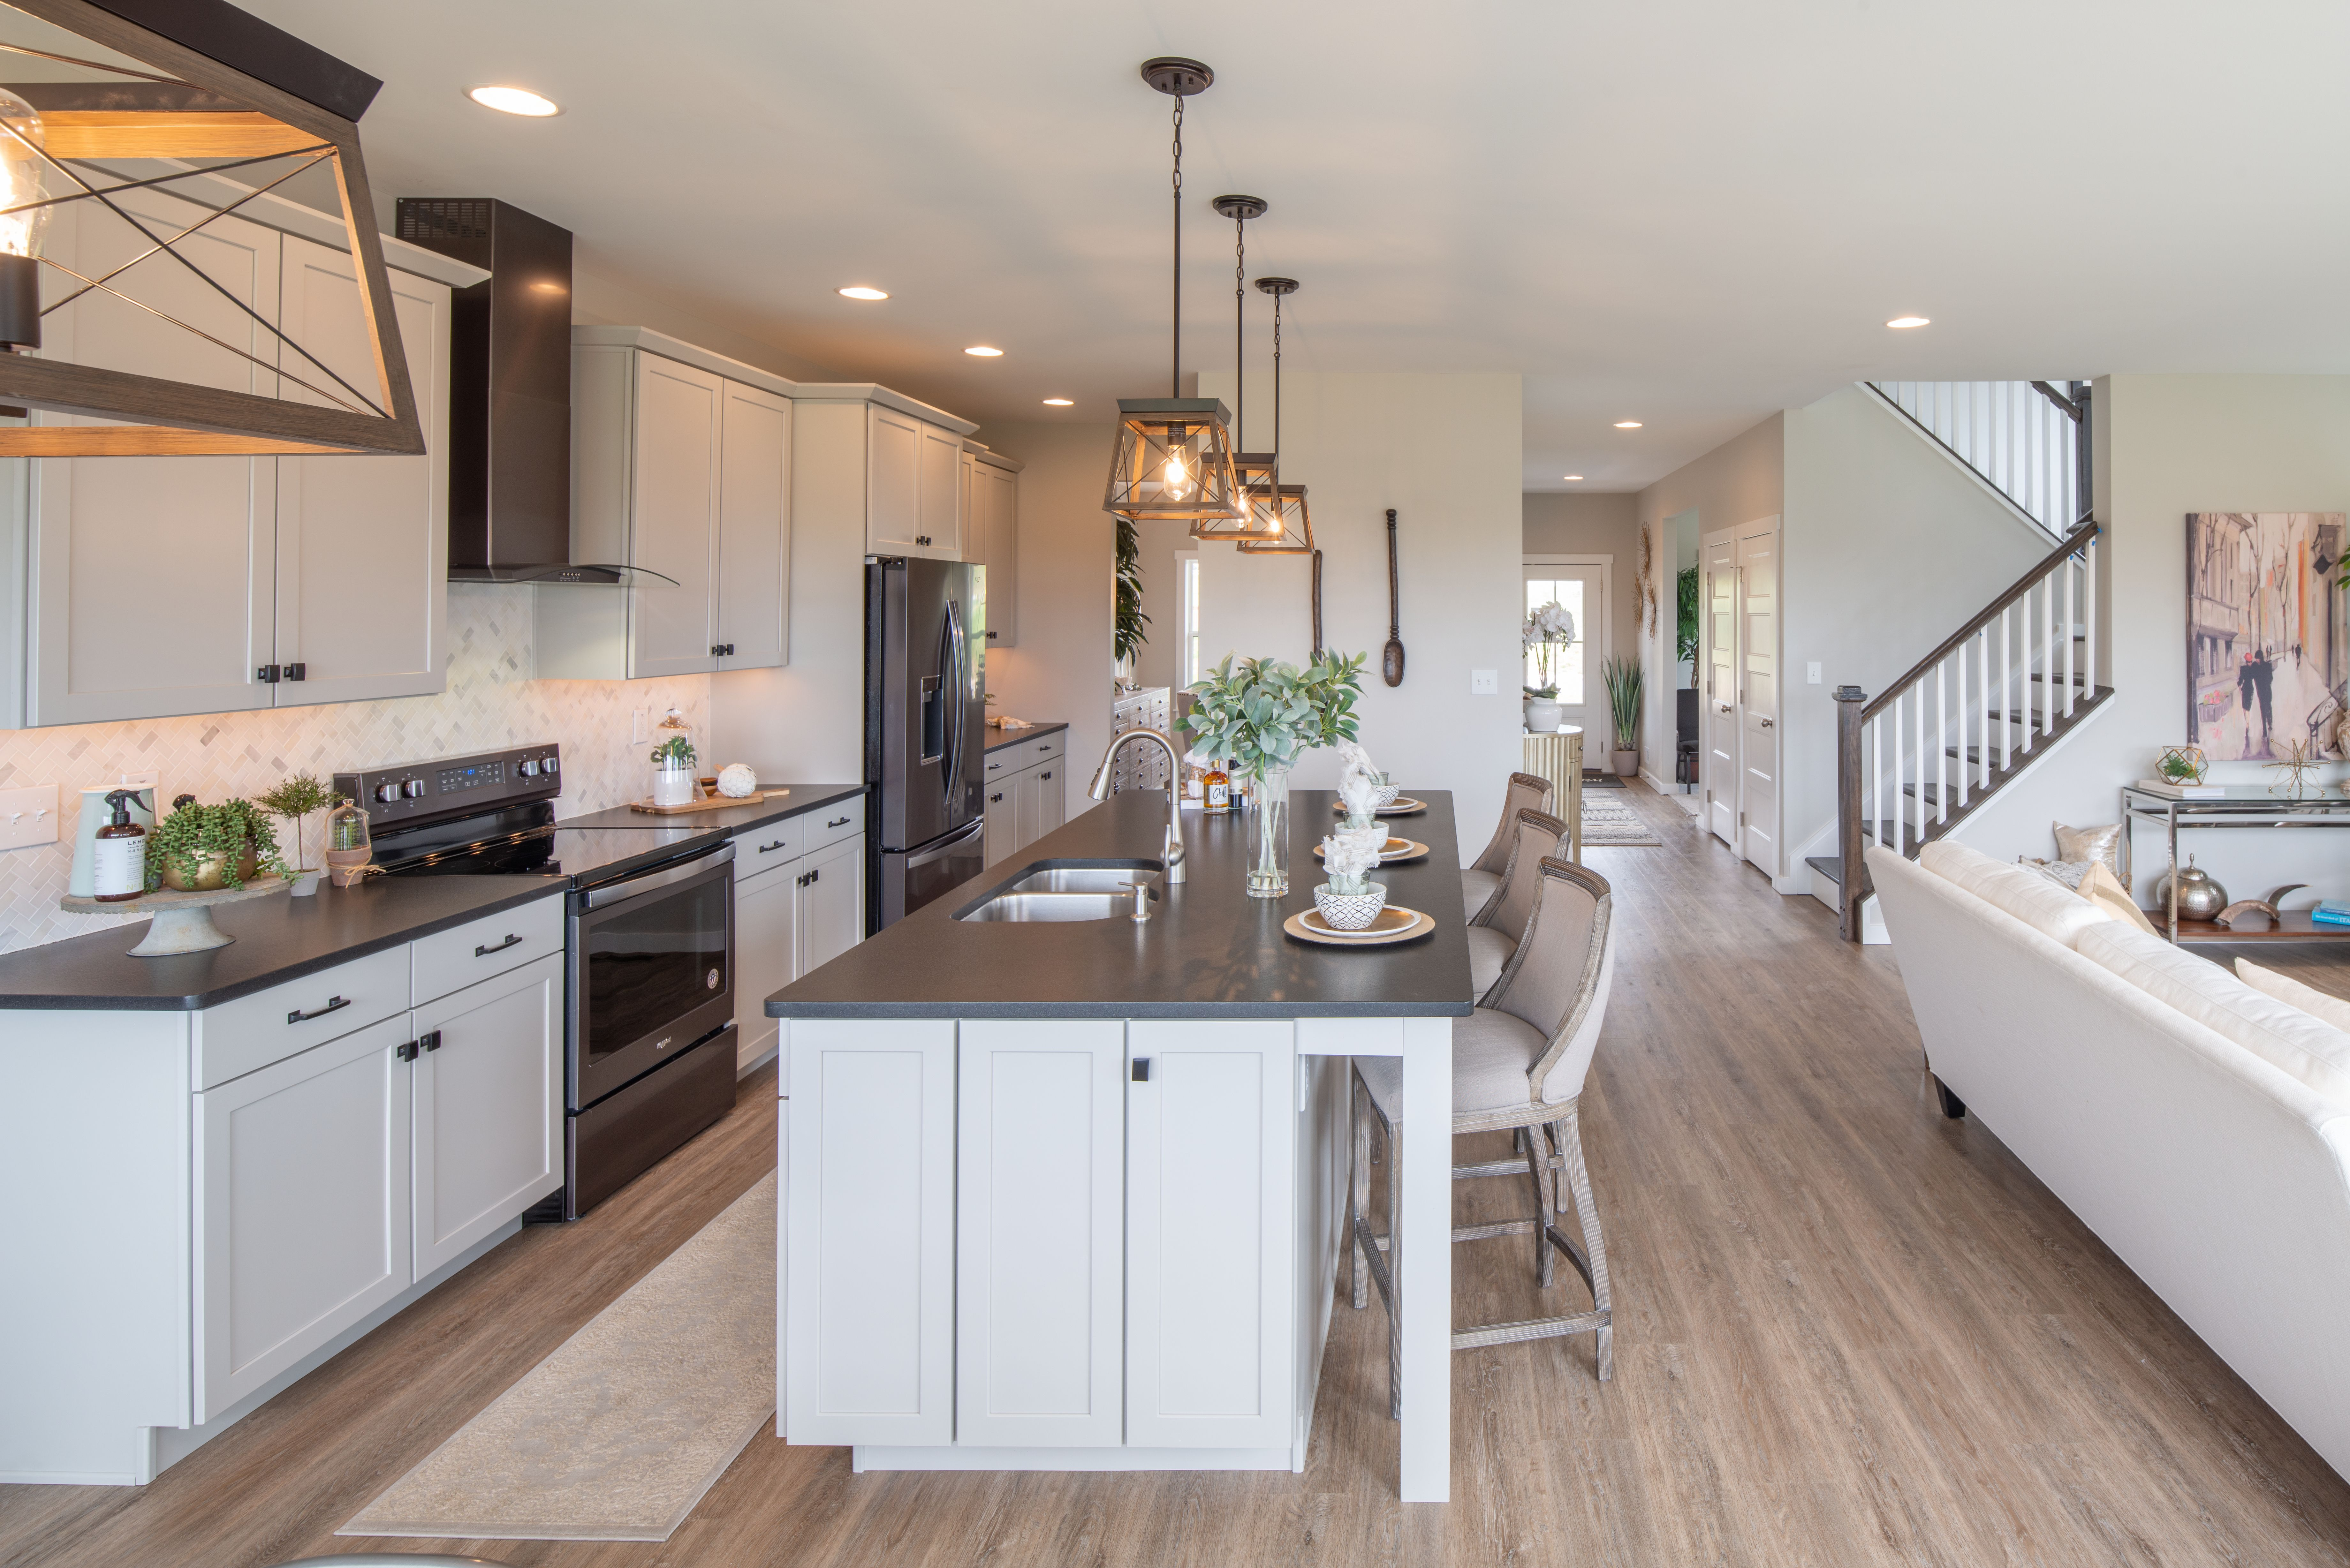 Kitchen featured in the Addison Heritage By Keystone Custom Homes in Baltimore, MD